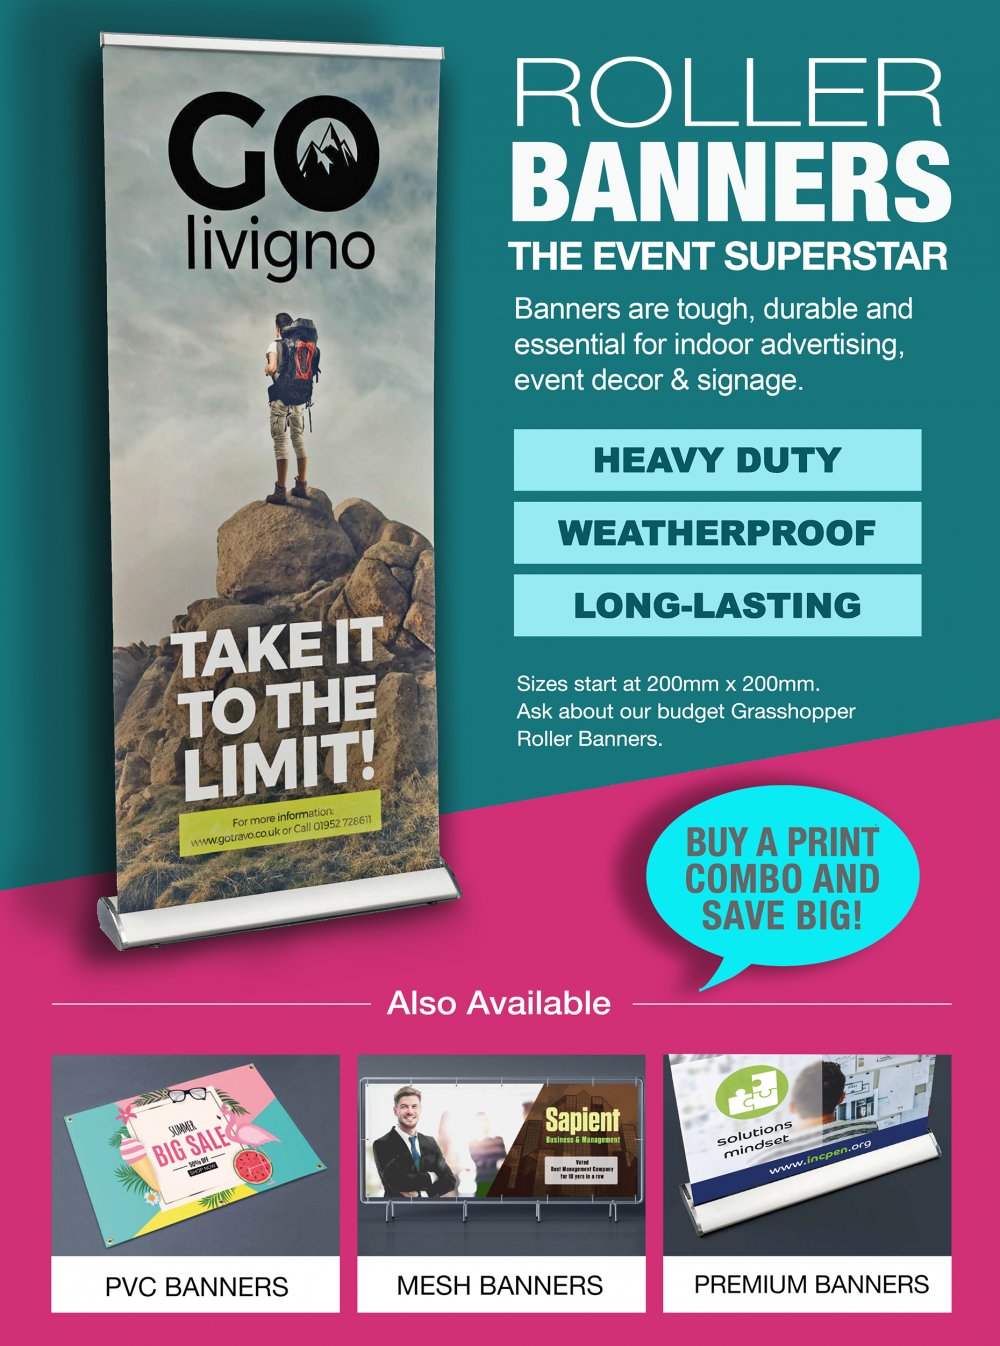 Roller Banners, the event superstar